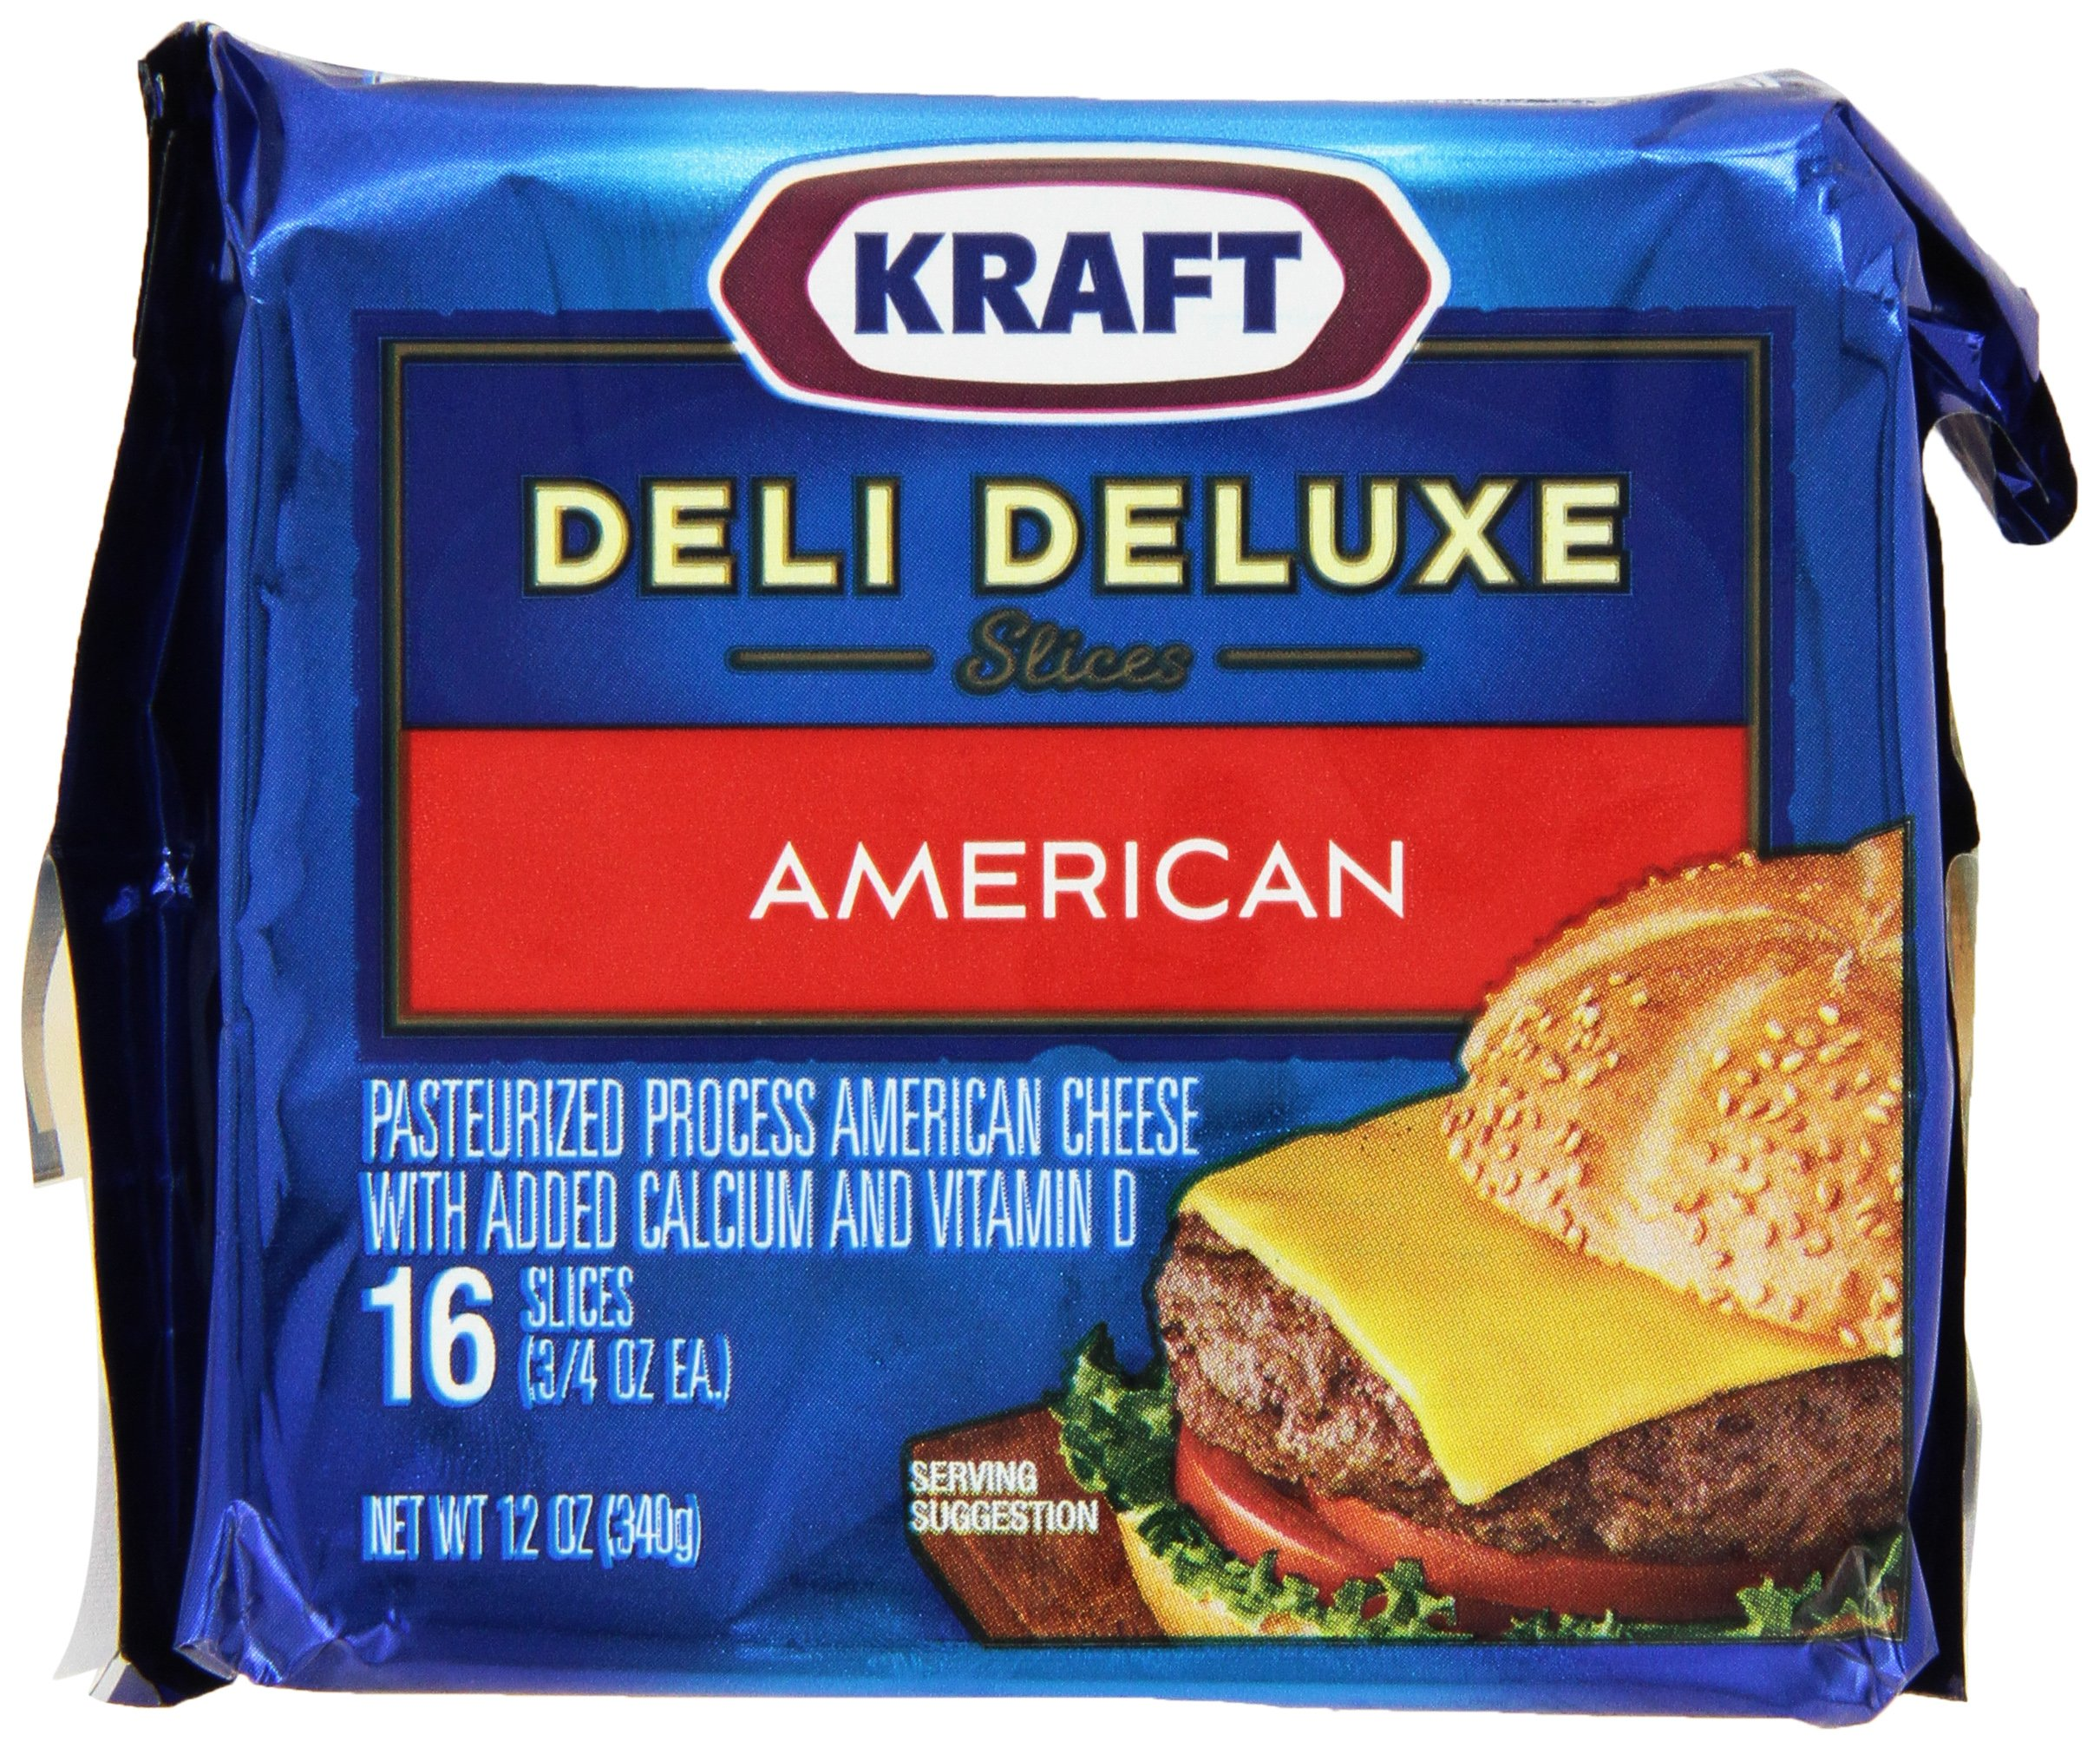 Kraft, Deli Deluxe Cheese, American, 16 Slices, 12 oz